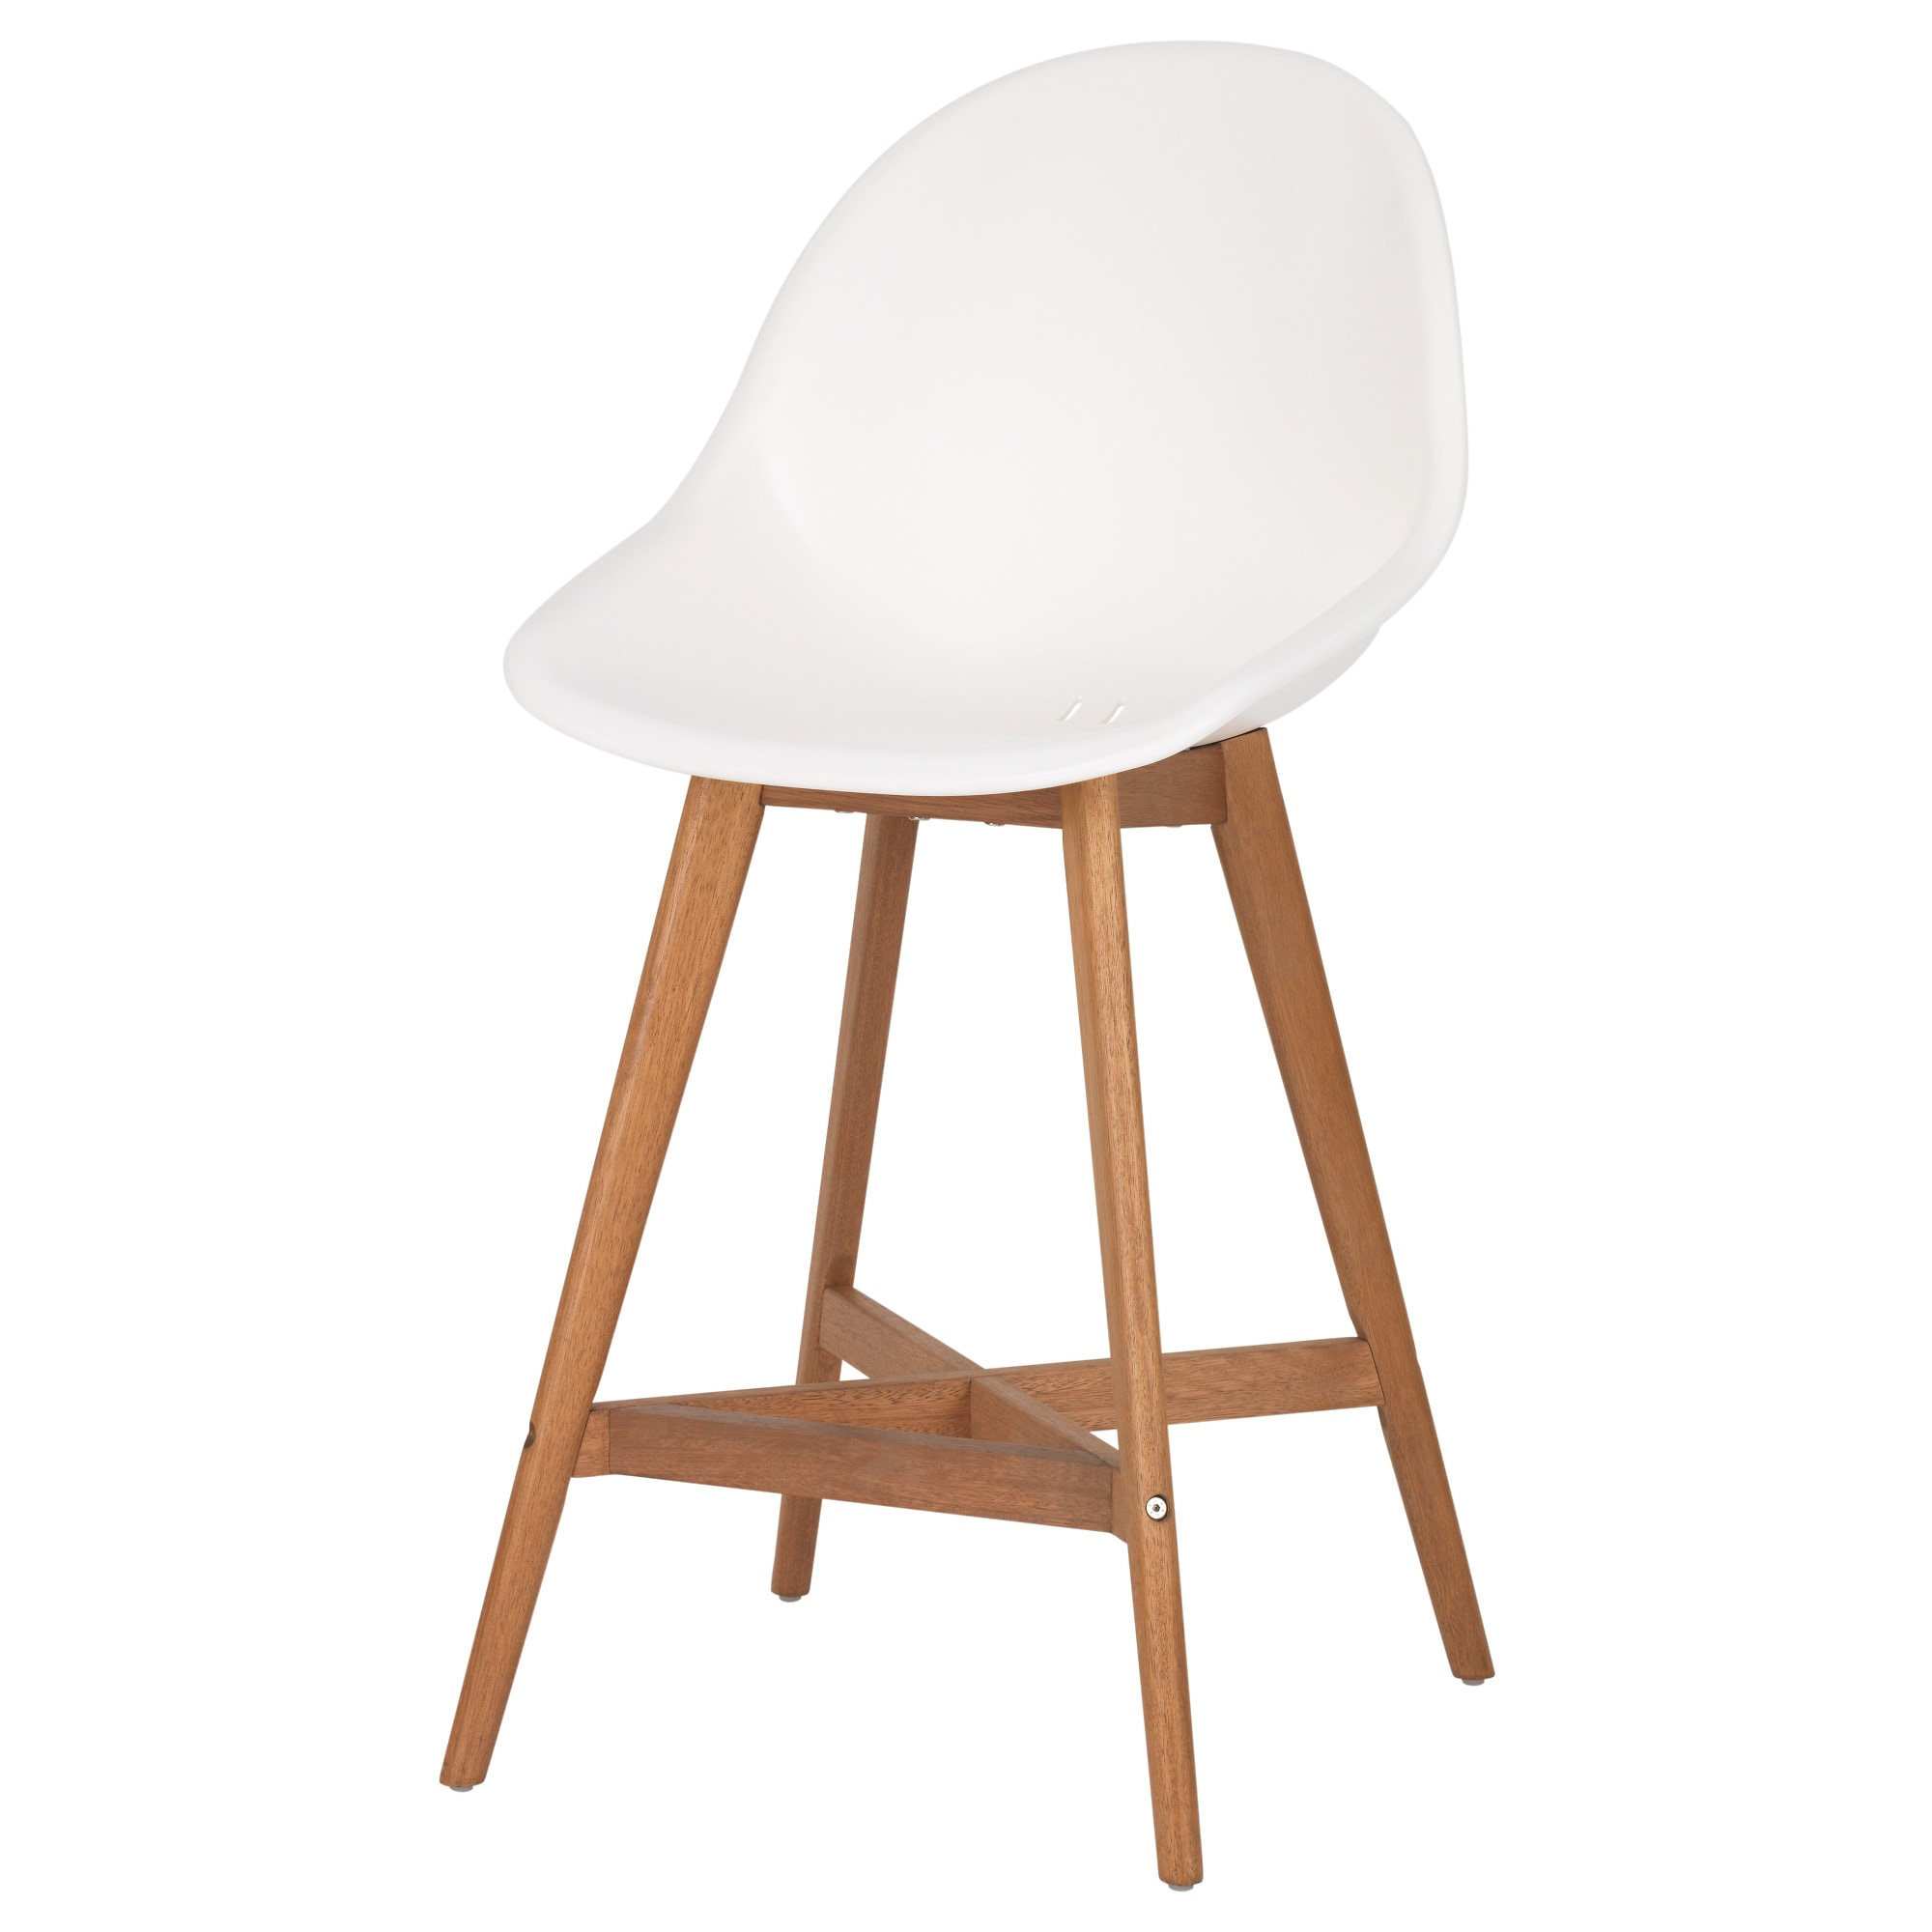 FANBYN Bar Stool With Backrest, White Tested For: 243 Lb Width: 20 1